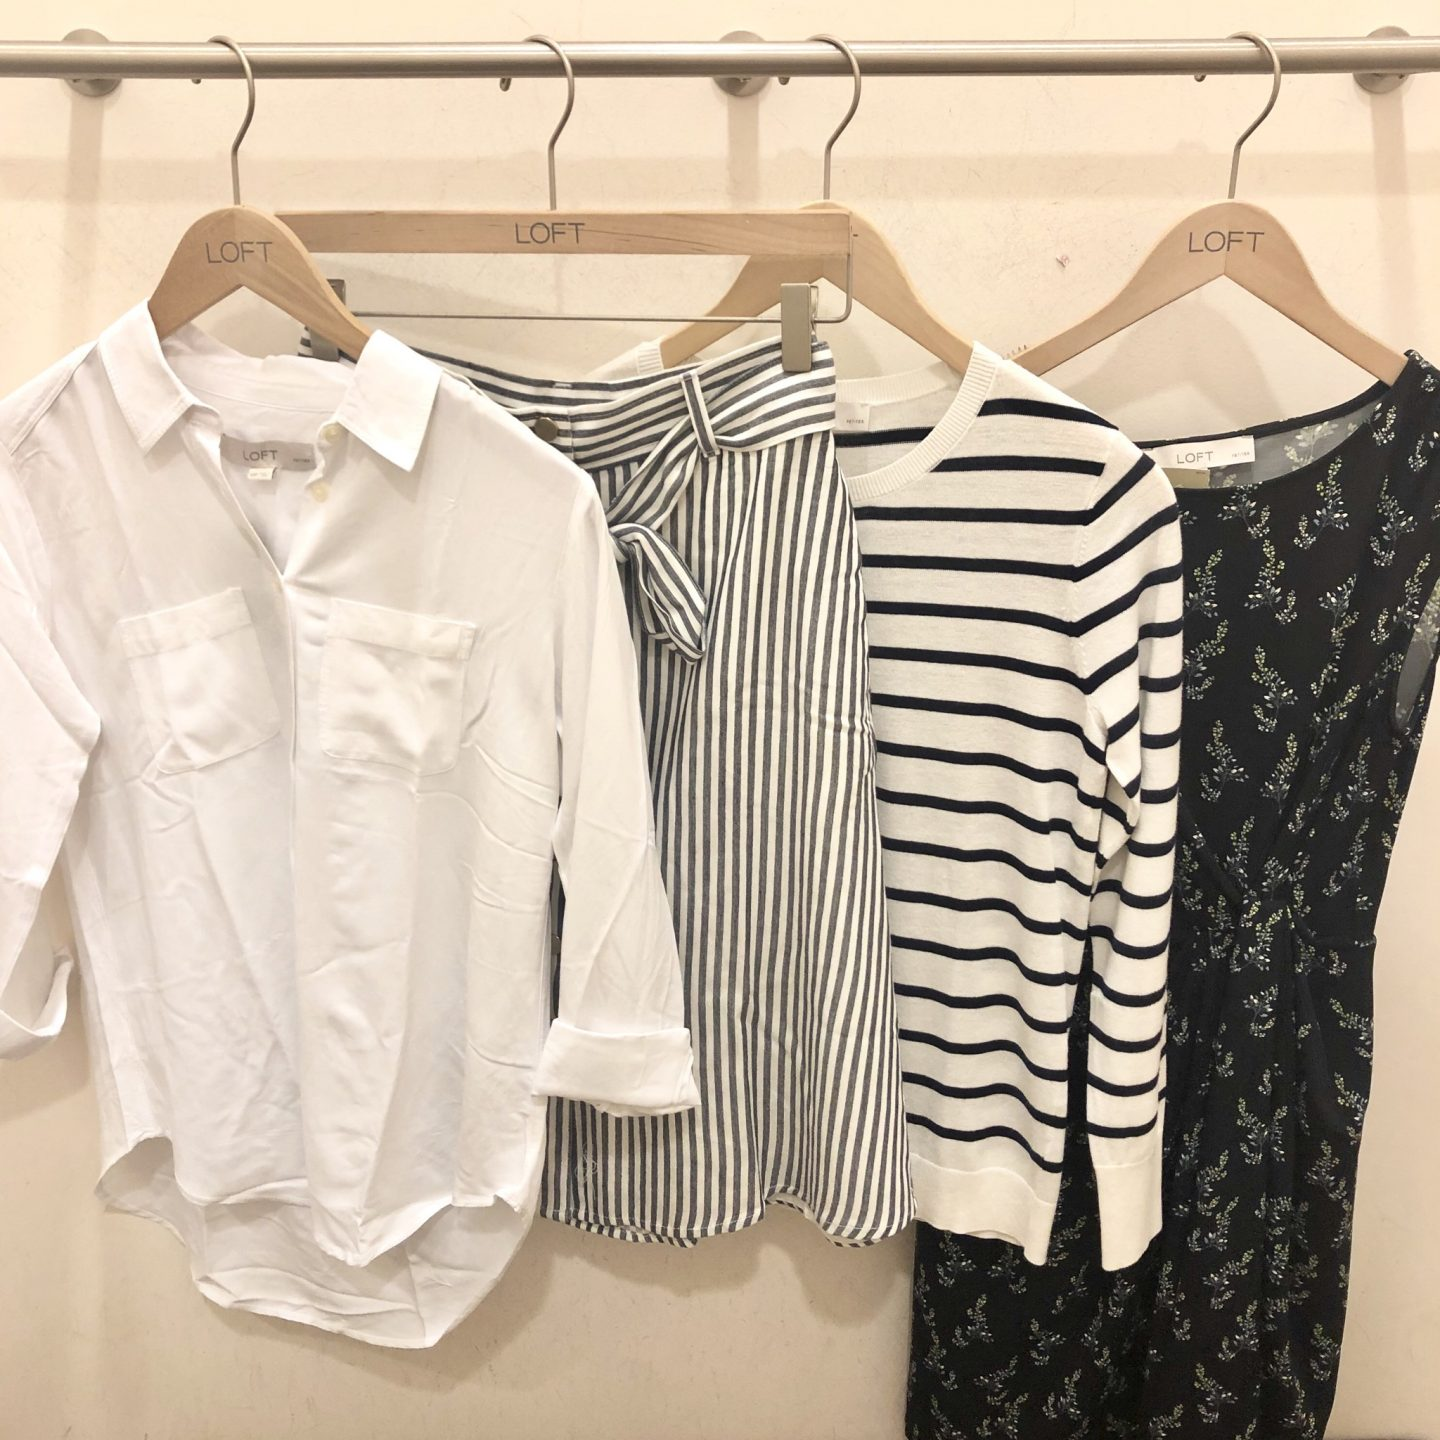 LOFT Spring Fitting Room Reviews on www.whatjesswore.com